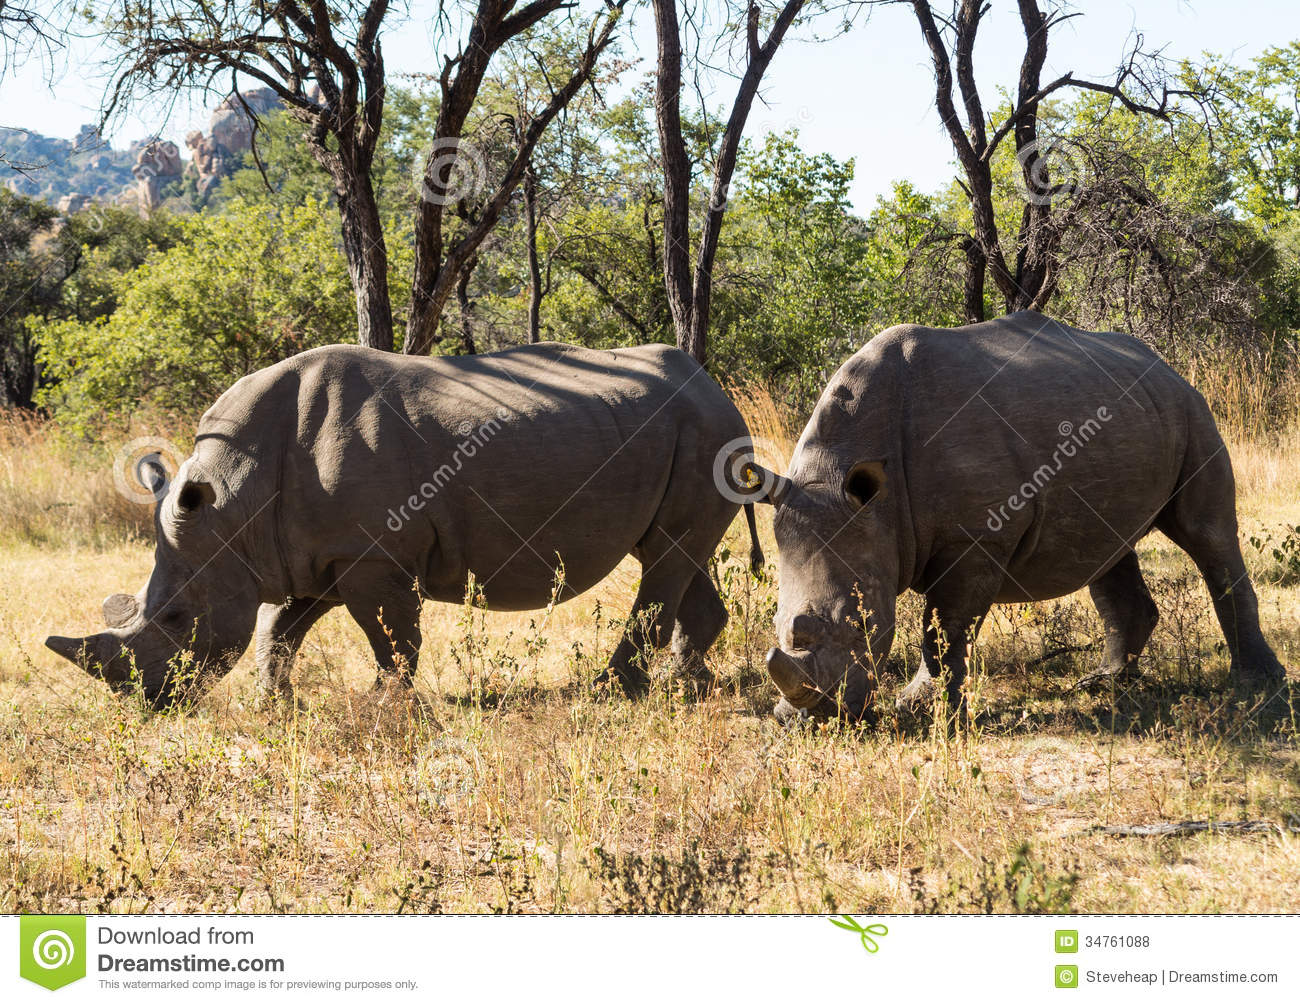 Two large rhinos grazing the grass in Zimbabwe